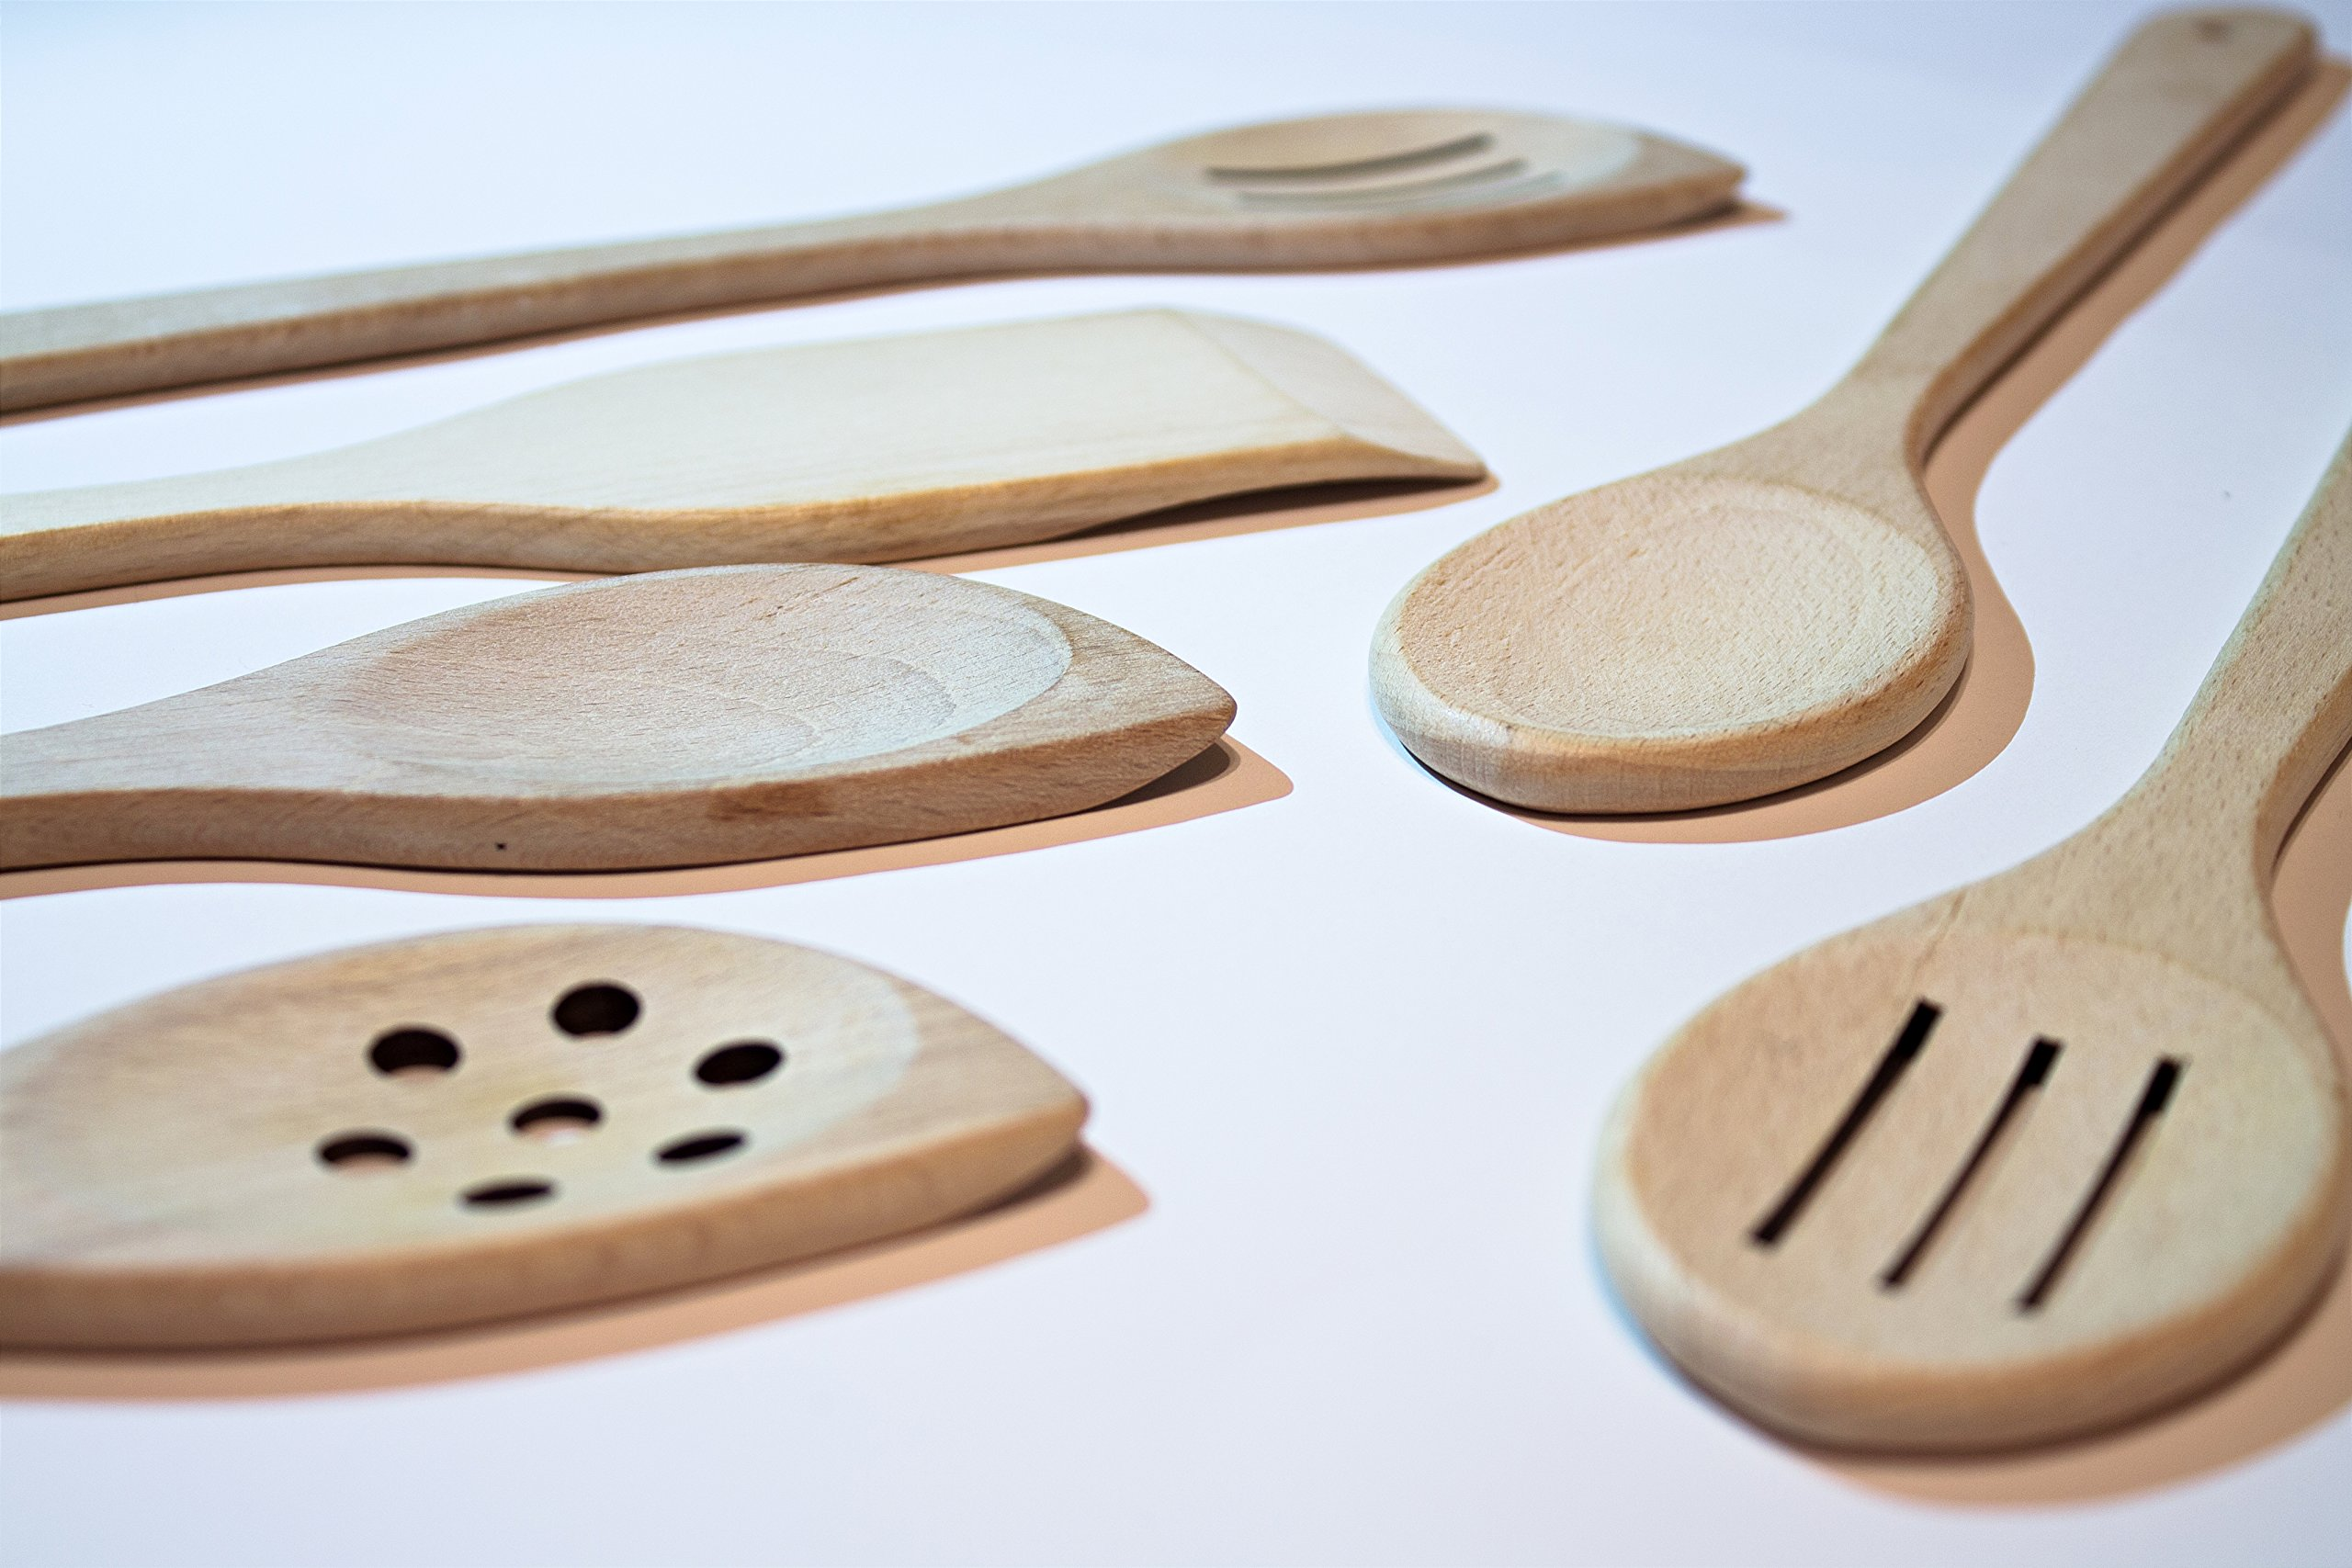 Healthy Cooking Utensils Set - 6 Wooden Spoons For Cooking – Natural Nonstick Hard Wood Spatula and Spoons – Uncoated and Unglued – Durable Eco-friendly and Safe Kitchen Cooking Tools. by ECOSALL (Image #3)